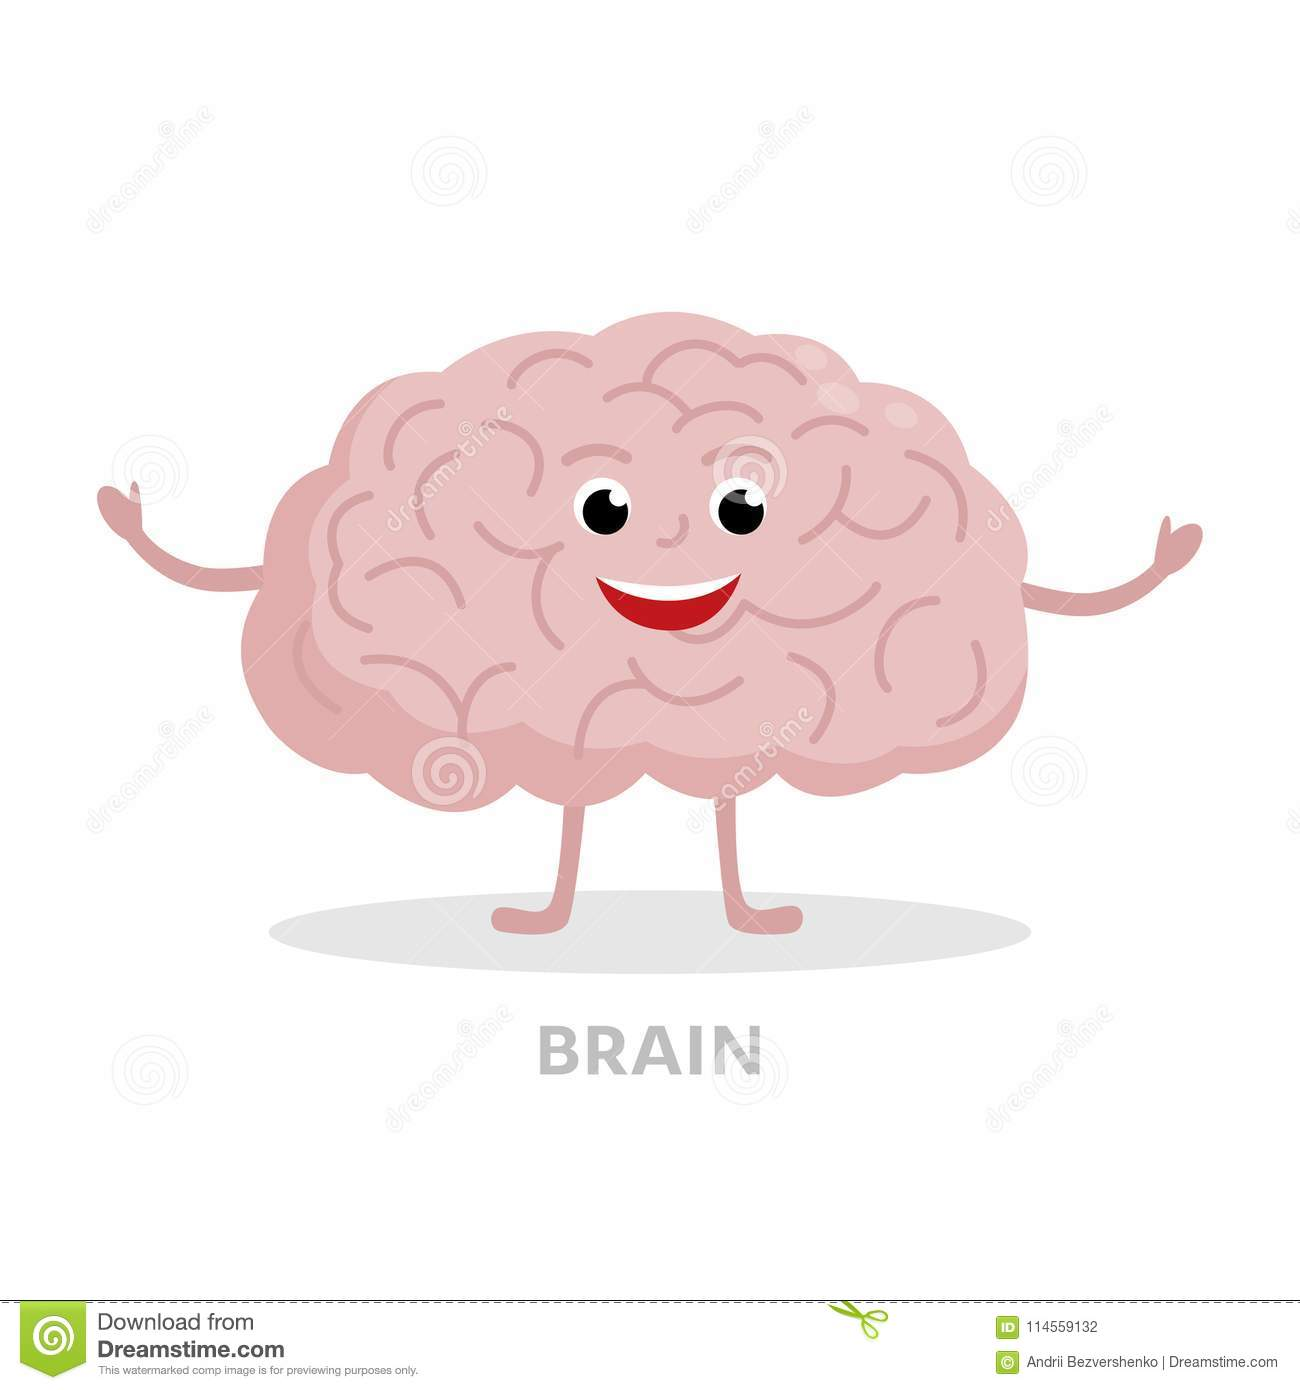 Smart brain cartoon character isolated on white background. Brain icon vector flat design. Healthy strong organ concept